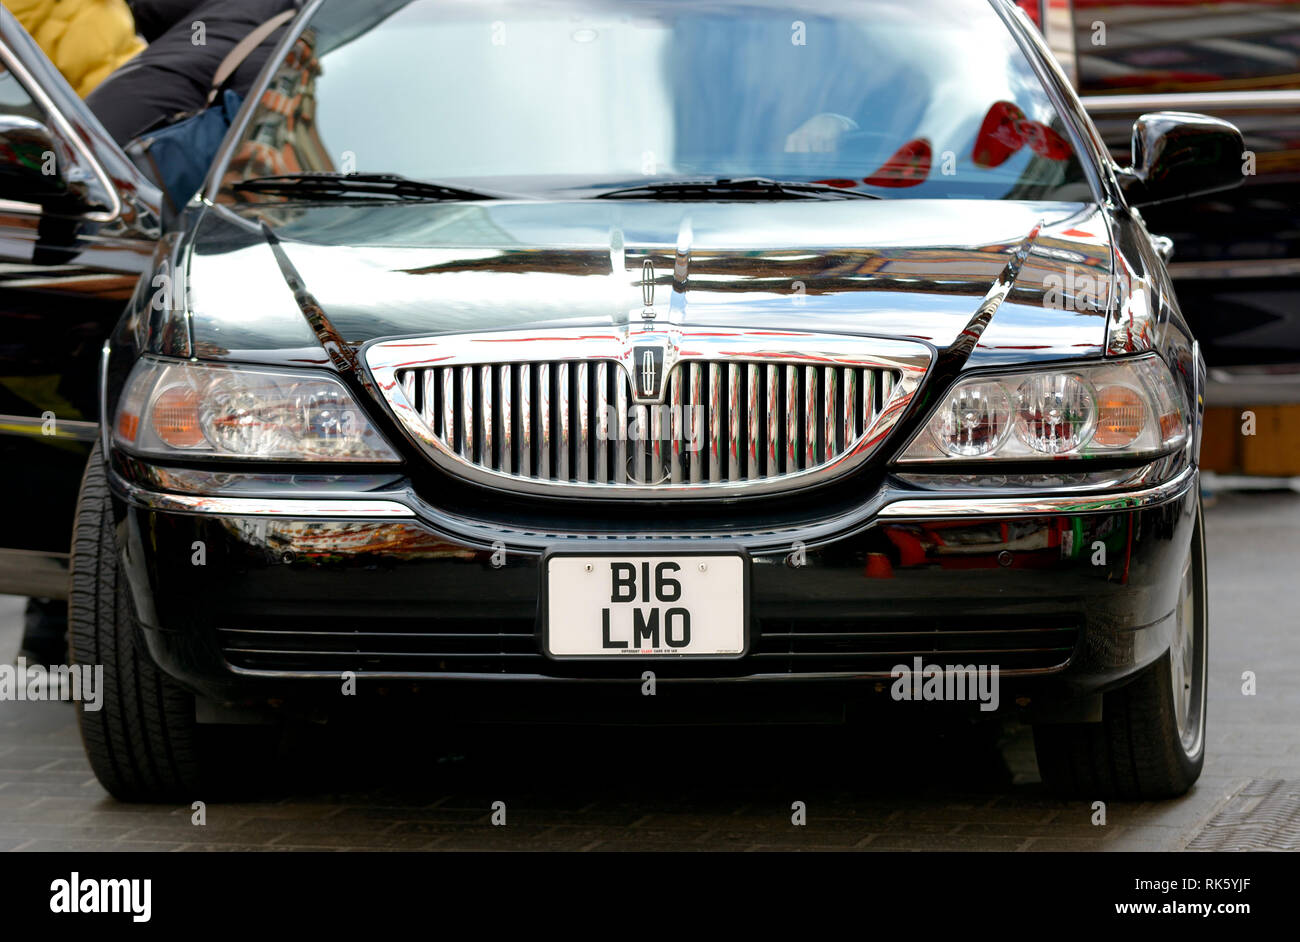 London, England, UK. Lincoln stretch limousine with number plate BI6 LMO (Big Limo, almost) Stock Photo